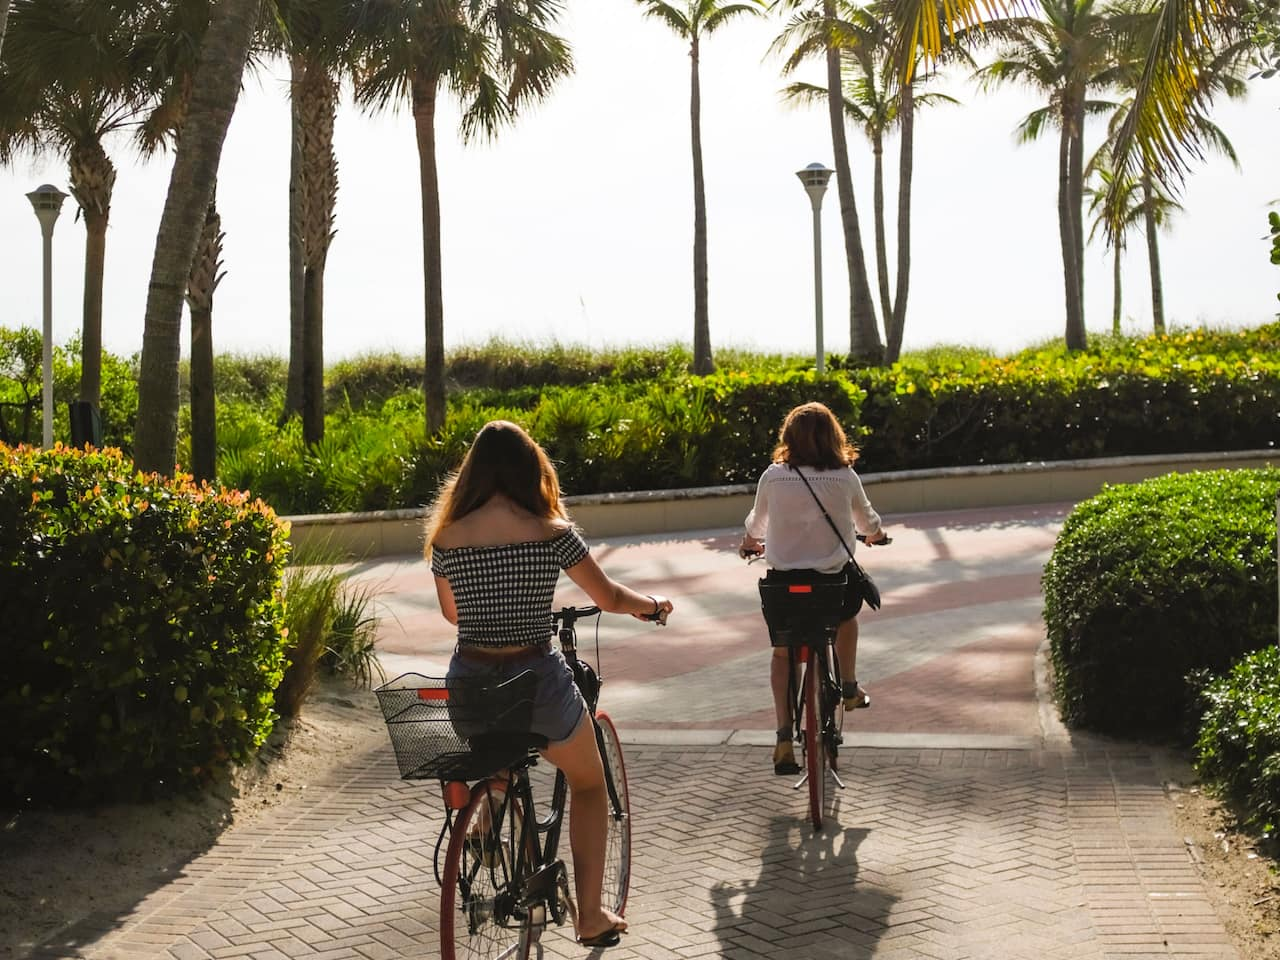 Hyatt Centric South Beach bike ride